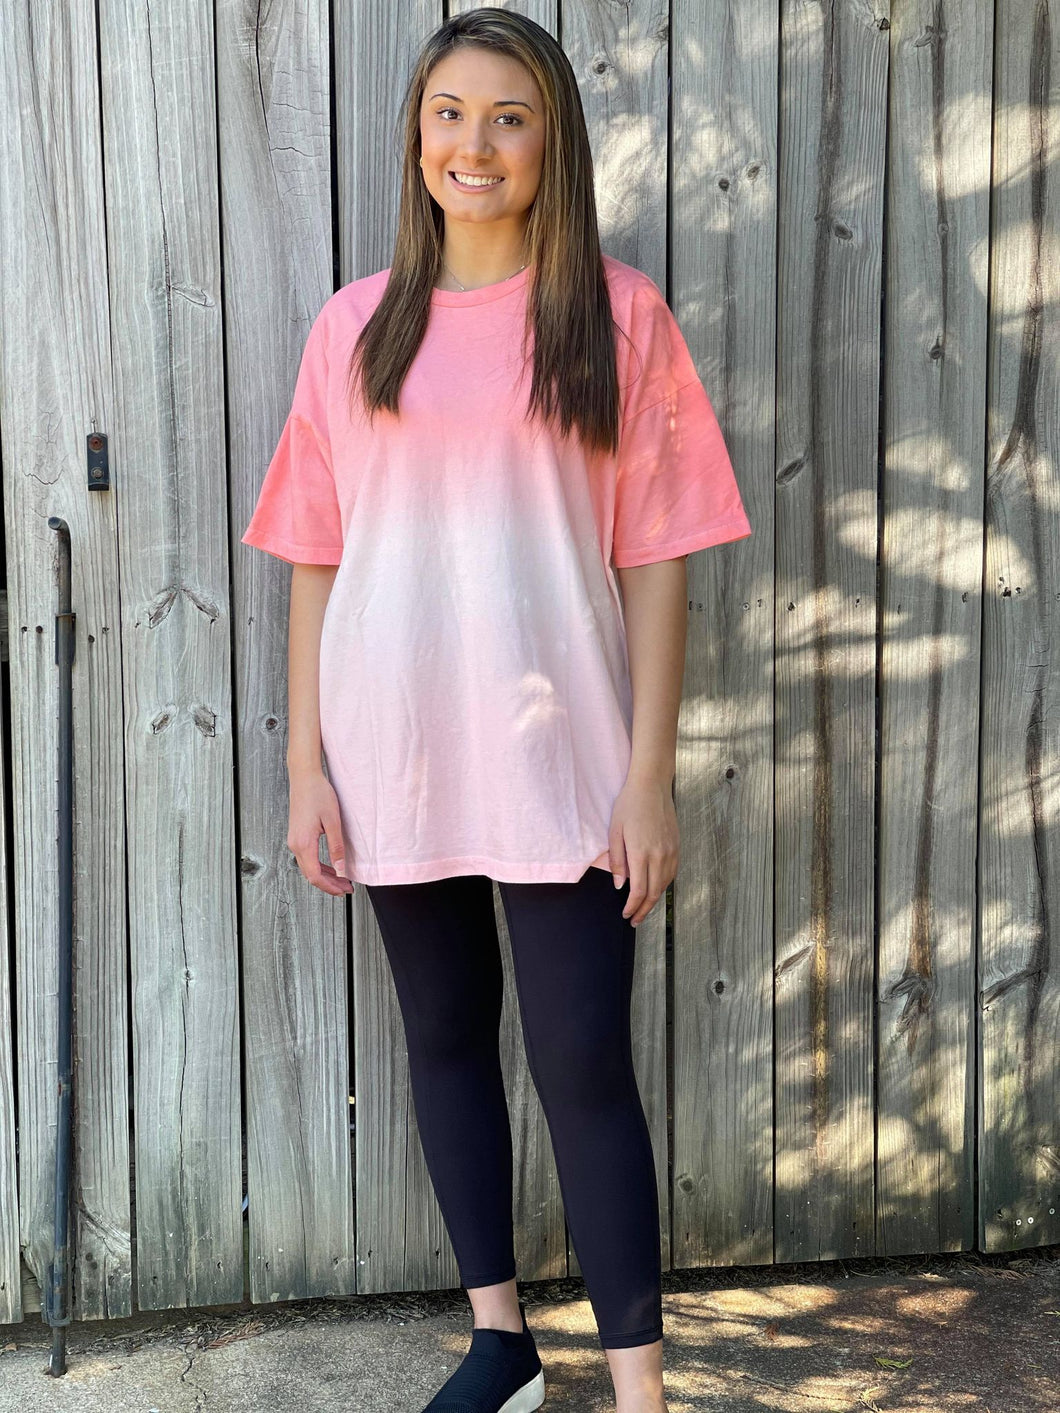 Step into a comfy look with our Dye it Top. She is an oversized dip tie dye top with a drop shoulder. She is a great oversized tee to throw on and explore the world in whether you are taking a short hike or even going for a road trip, this top will not disappoint.